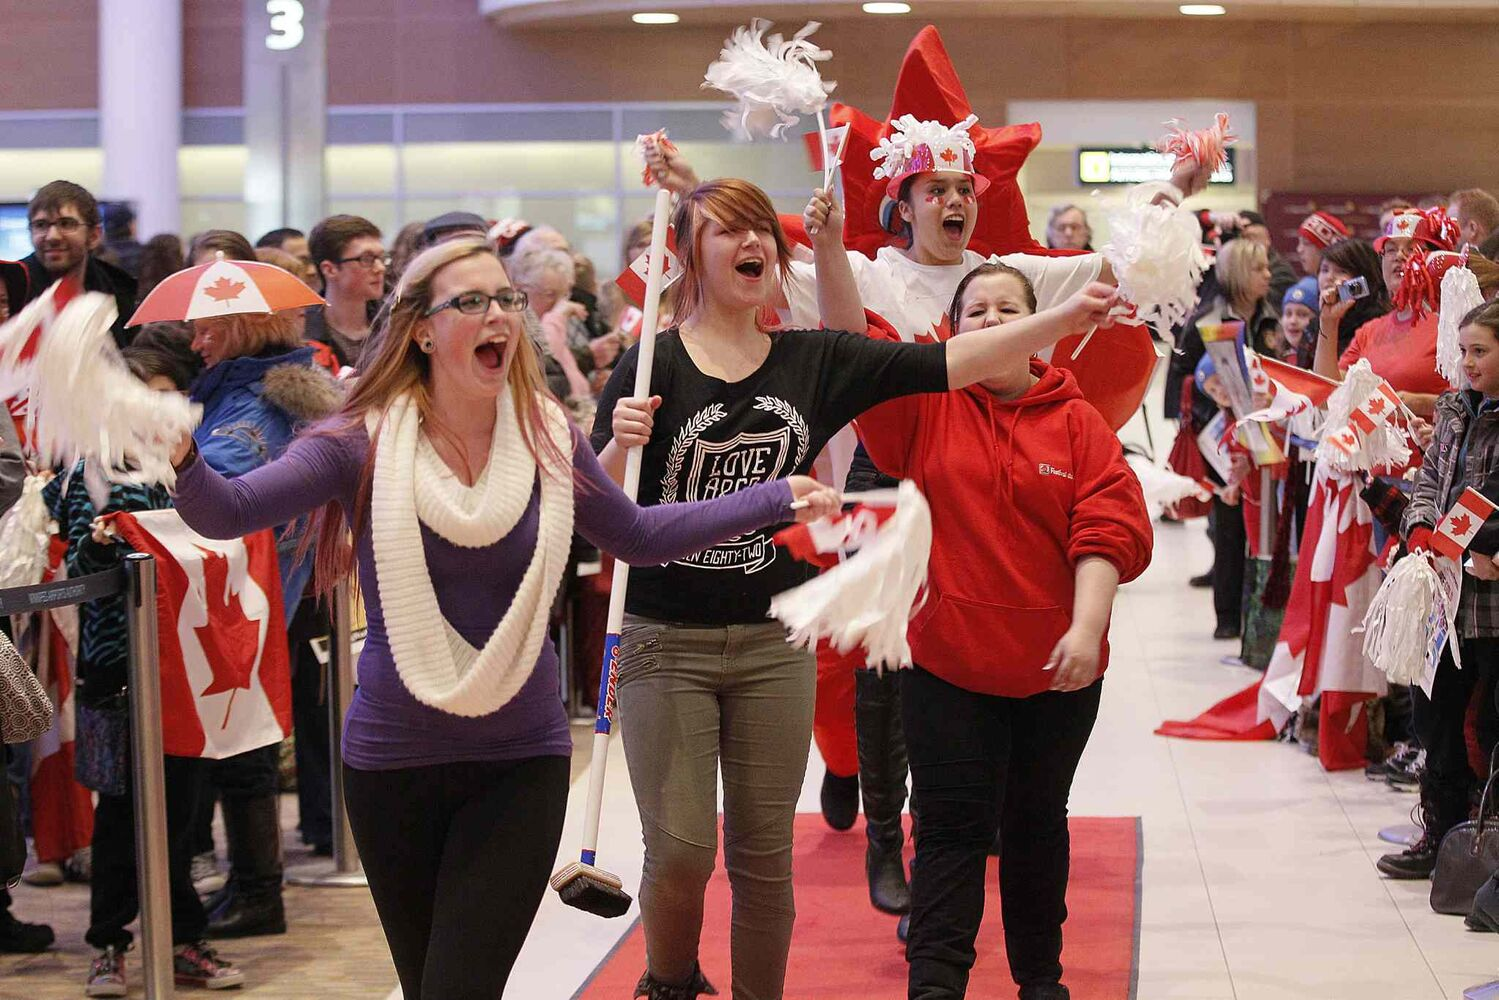 Fans get warmed up for the arrival of the Olympic curling gold medalists. (Winnipeg Free Press)